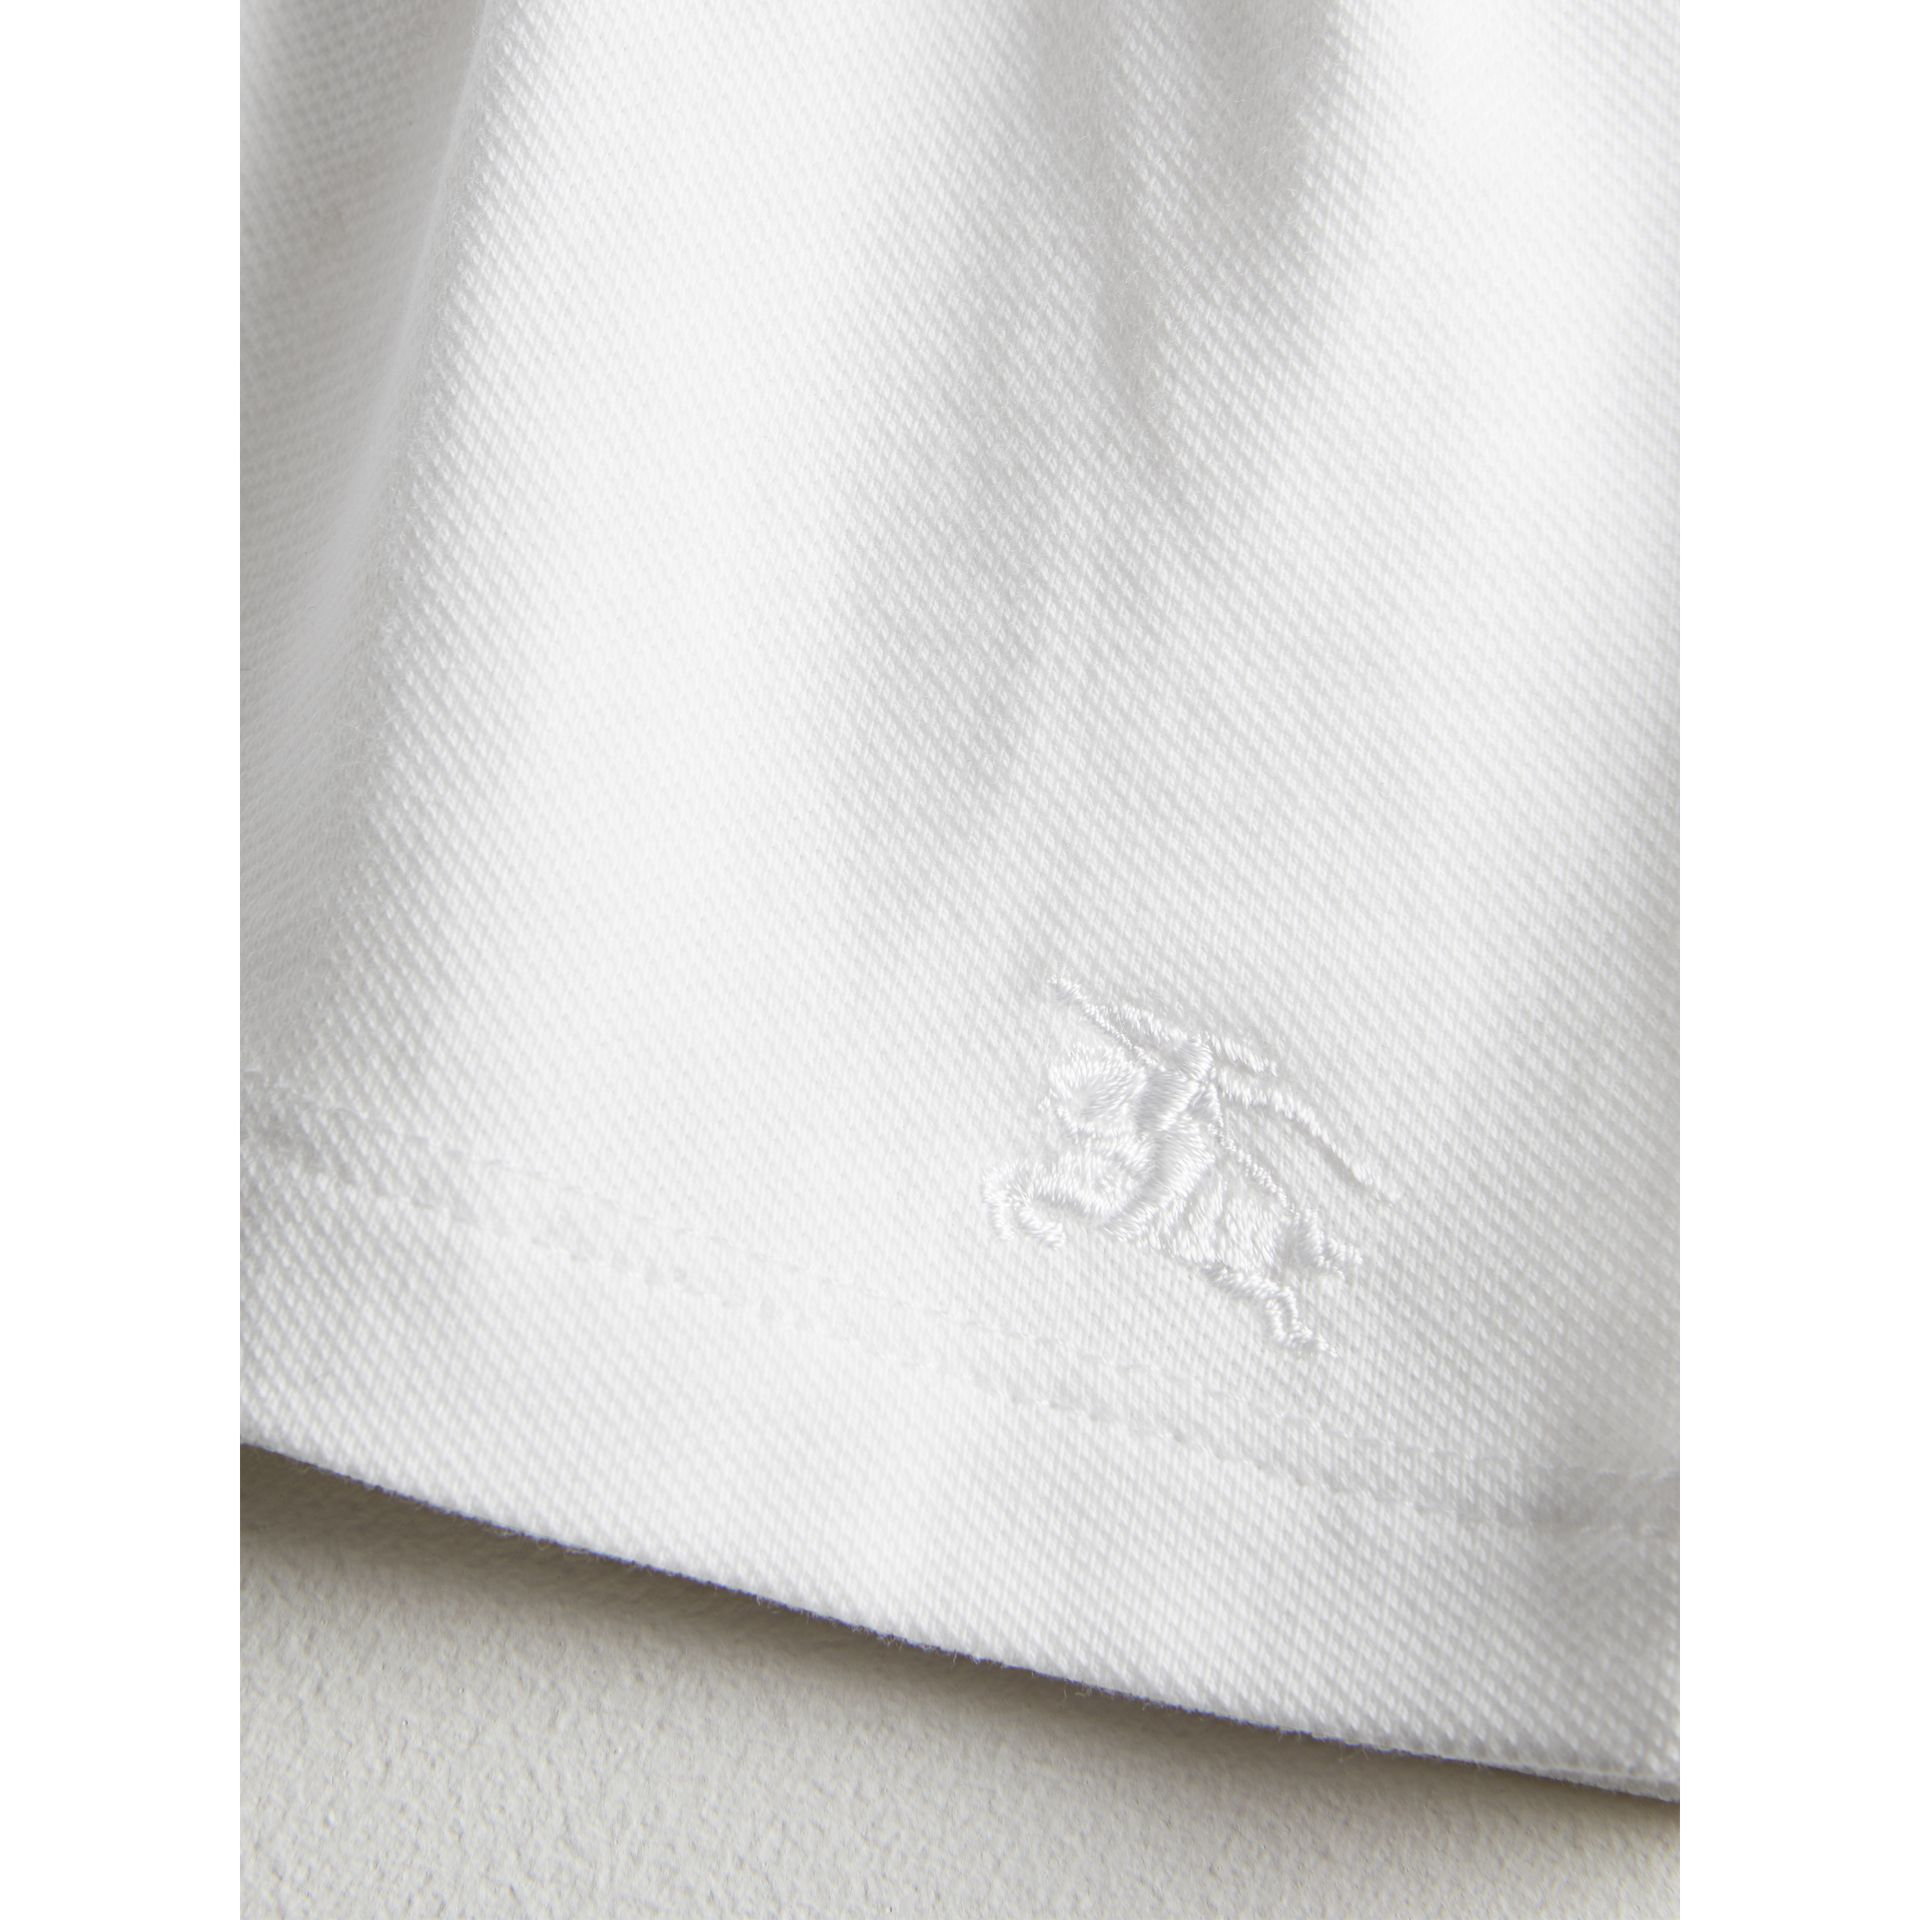 Check Detail Stretch Cotton Piqué Dress in White | Burberry Hong Kong - gallery image 1